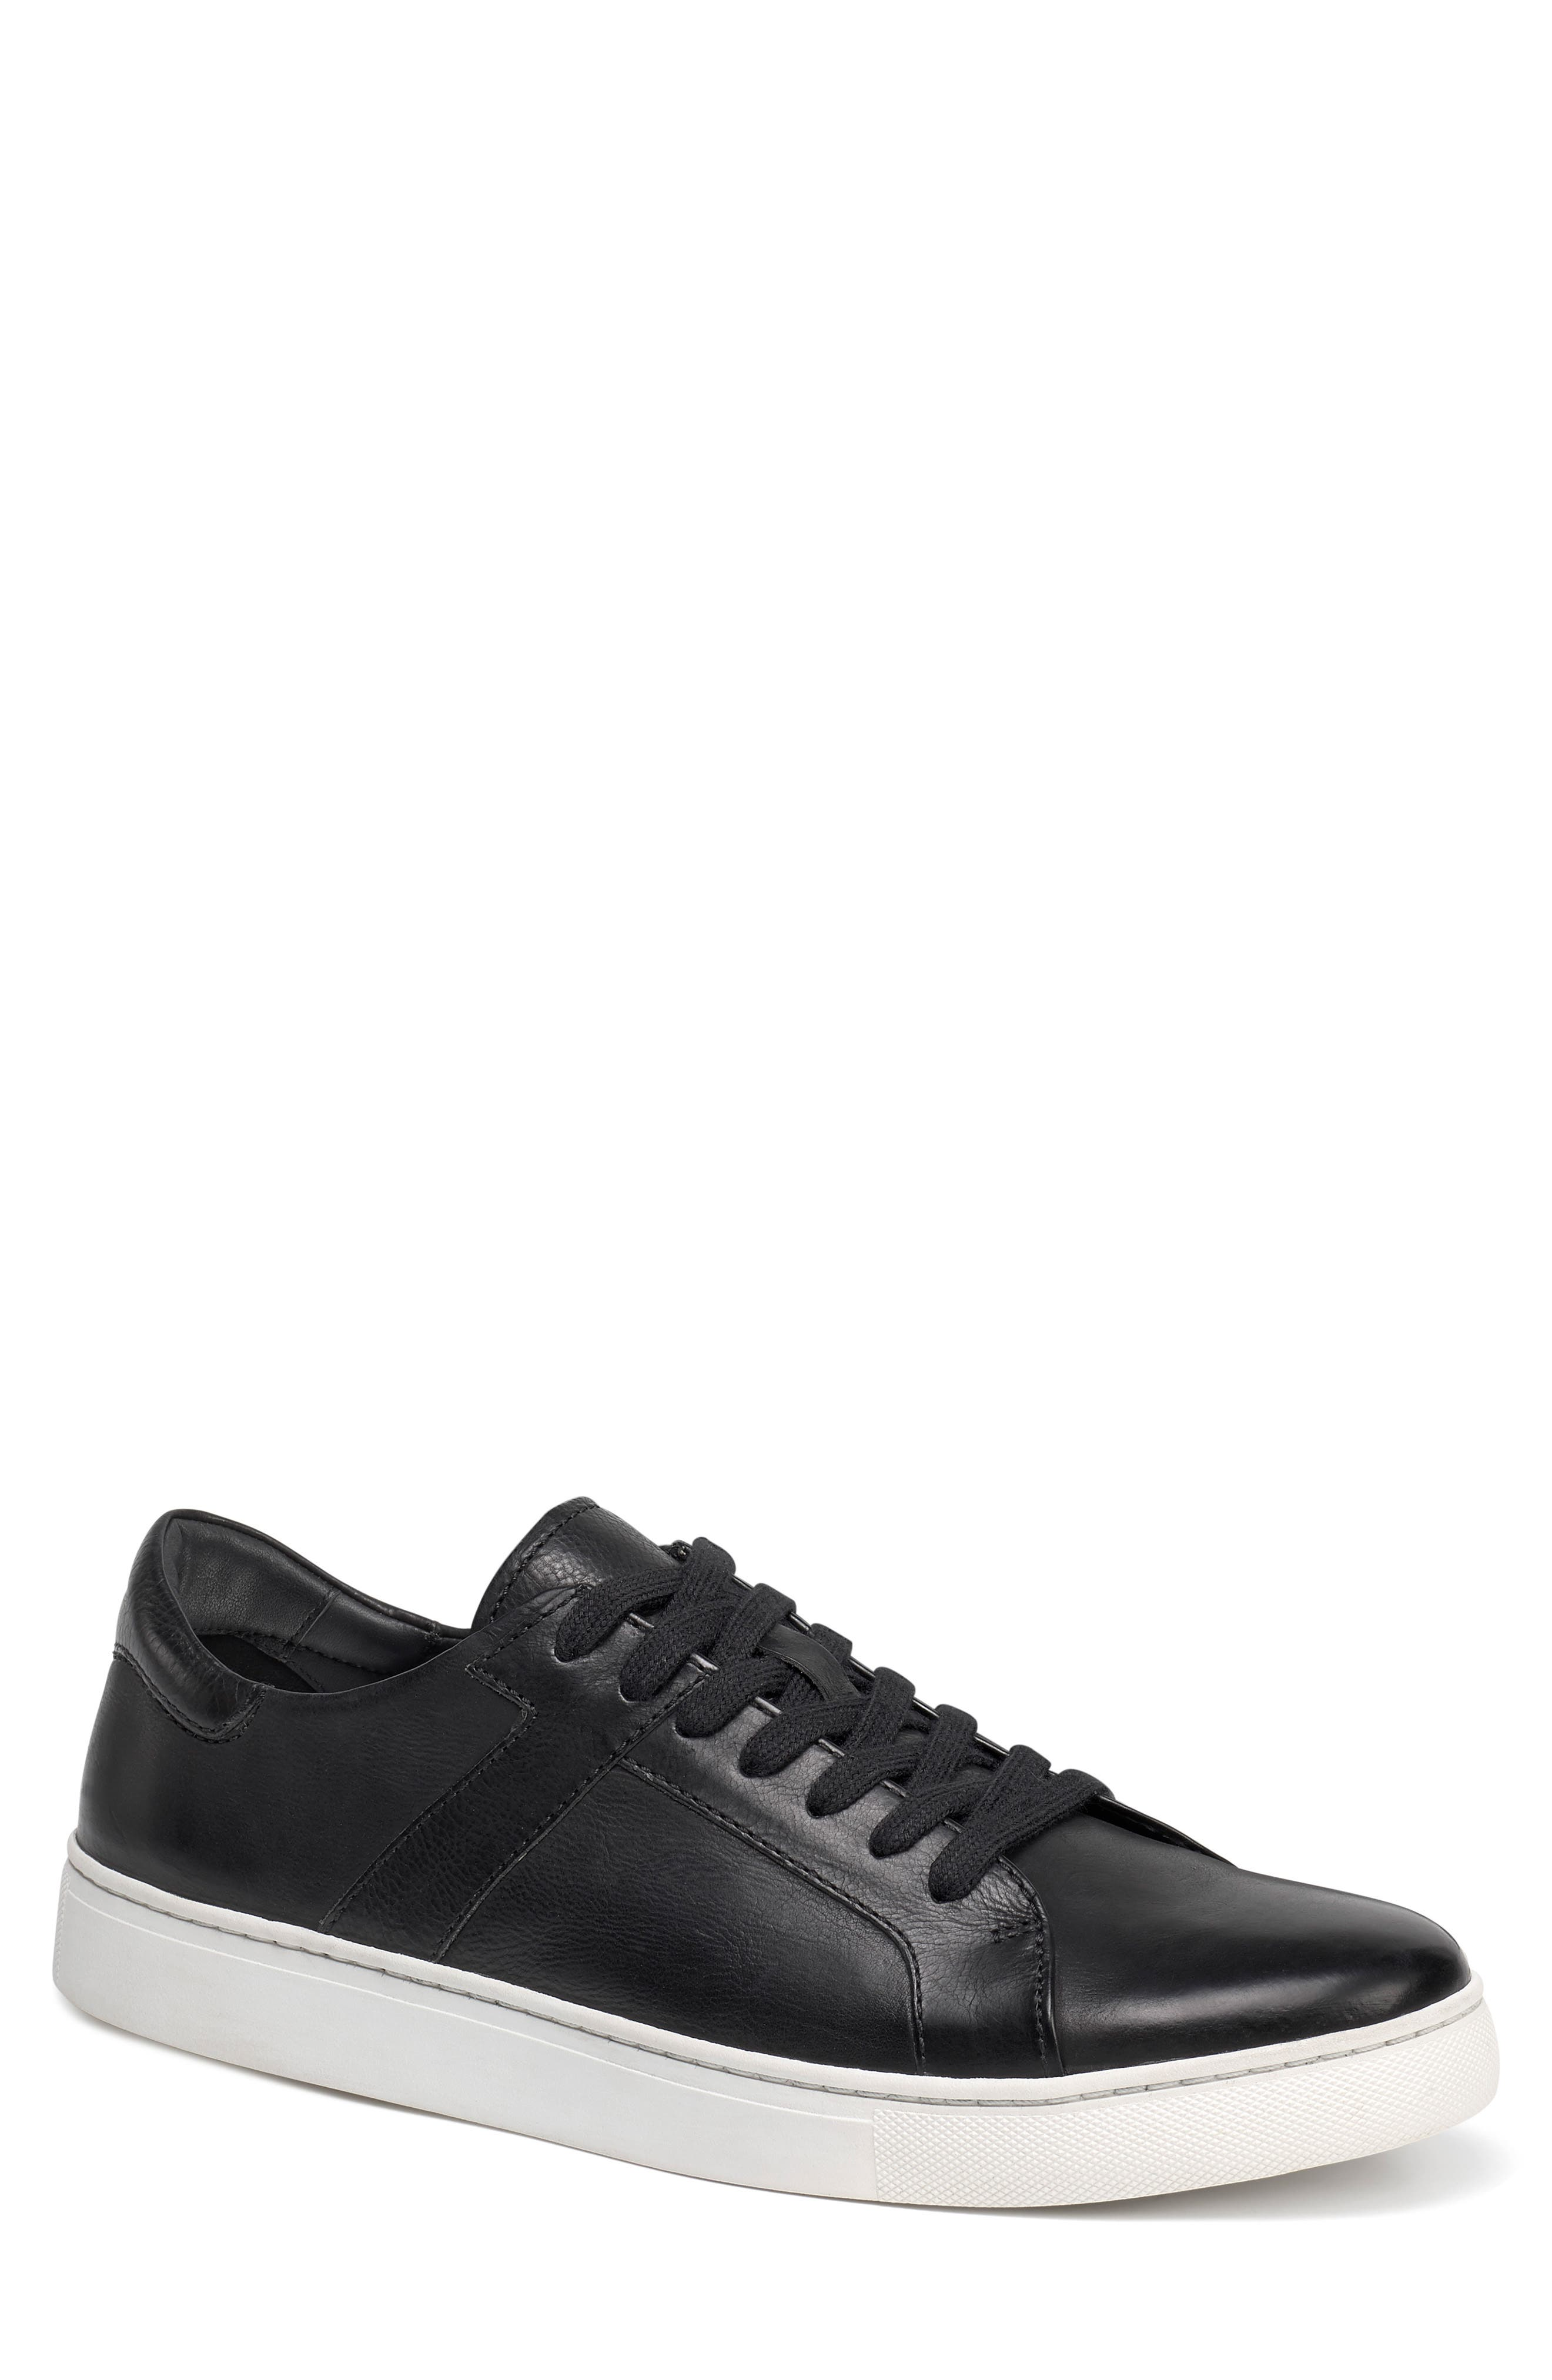 TRASK, Aaron Sneaker, Main thumbnail 1, color, BLACK LEATHER